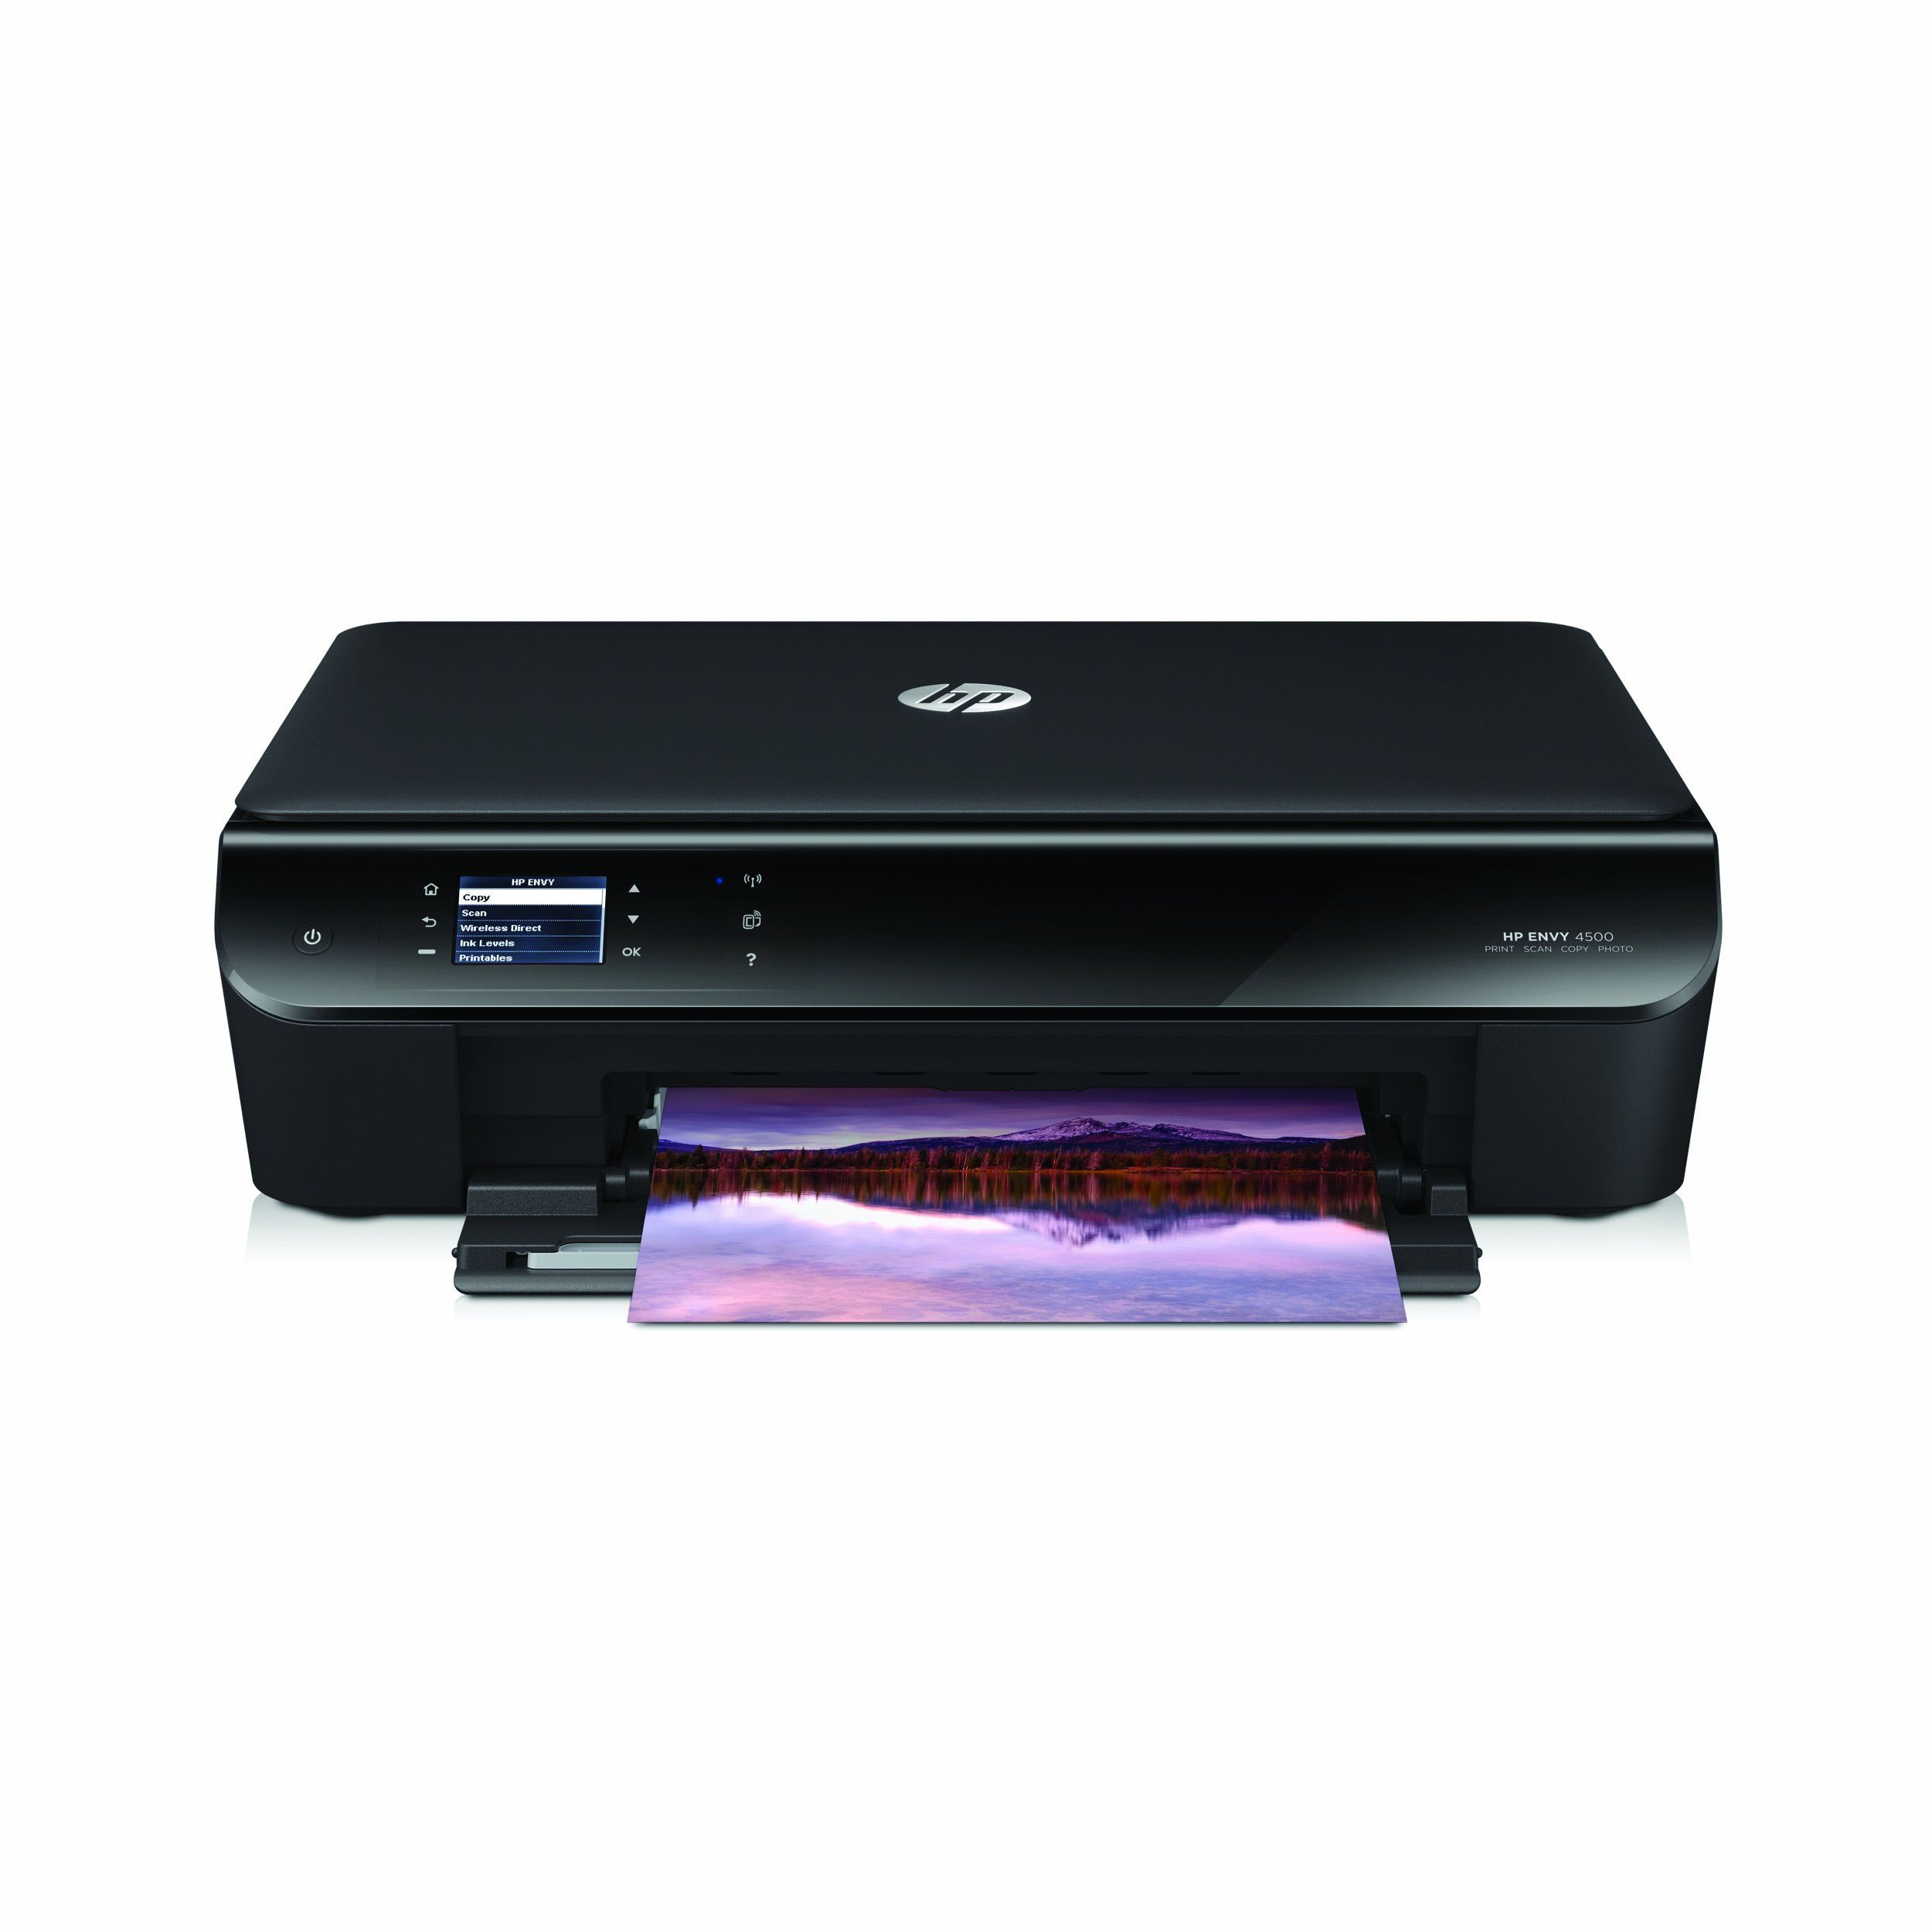 Hp Envy 4500 Wireless Color Photo Printer With Scanner And Copier Wireless Printer Mobile Print Printer